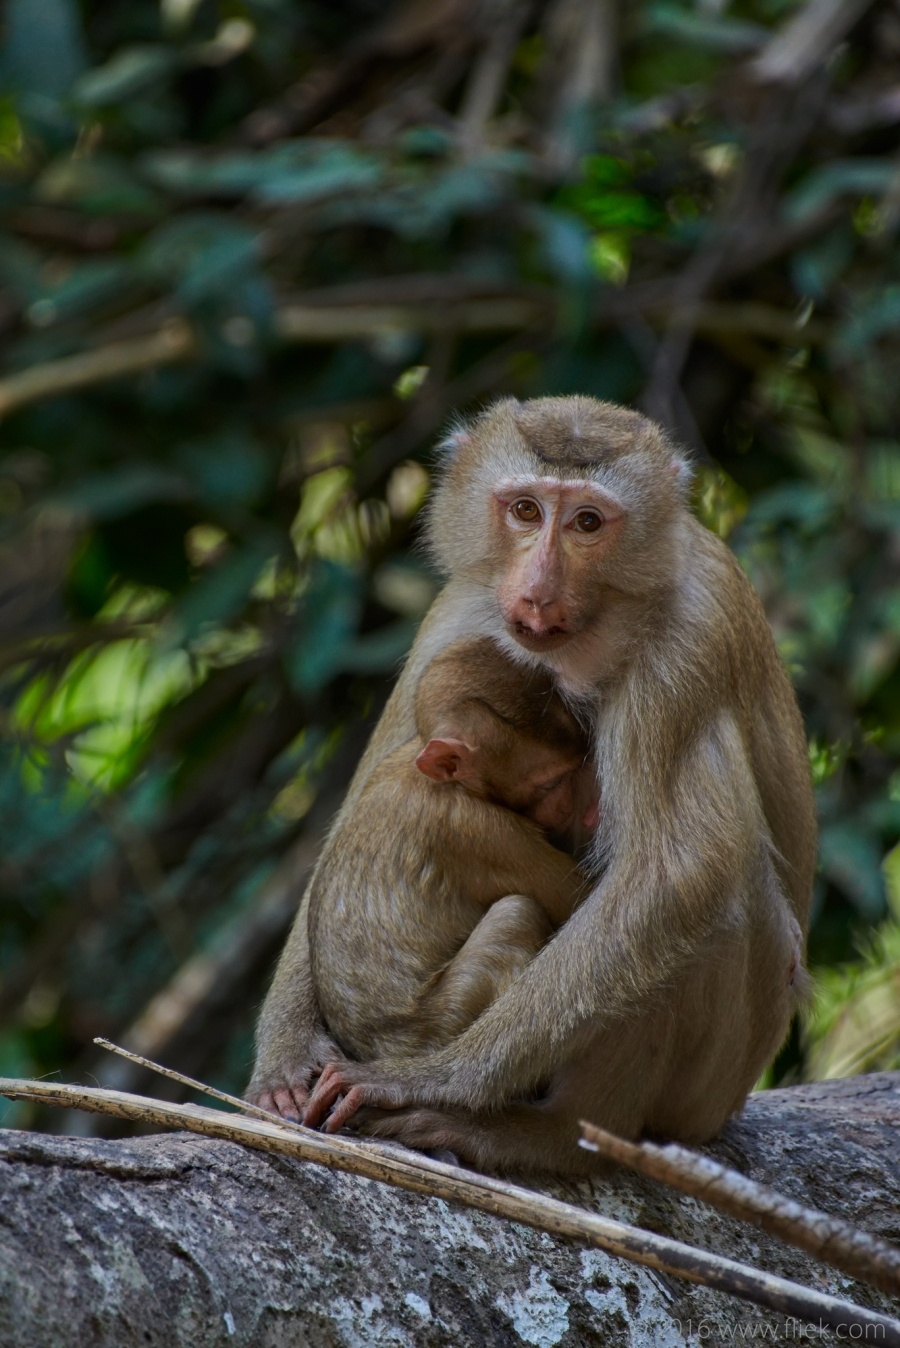 Khao Yai Macaque Nikon 200-500mm f5.6